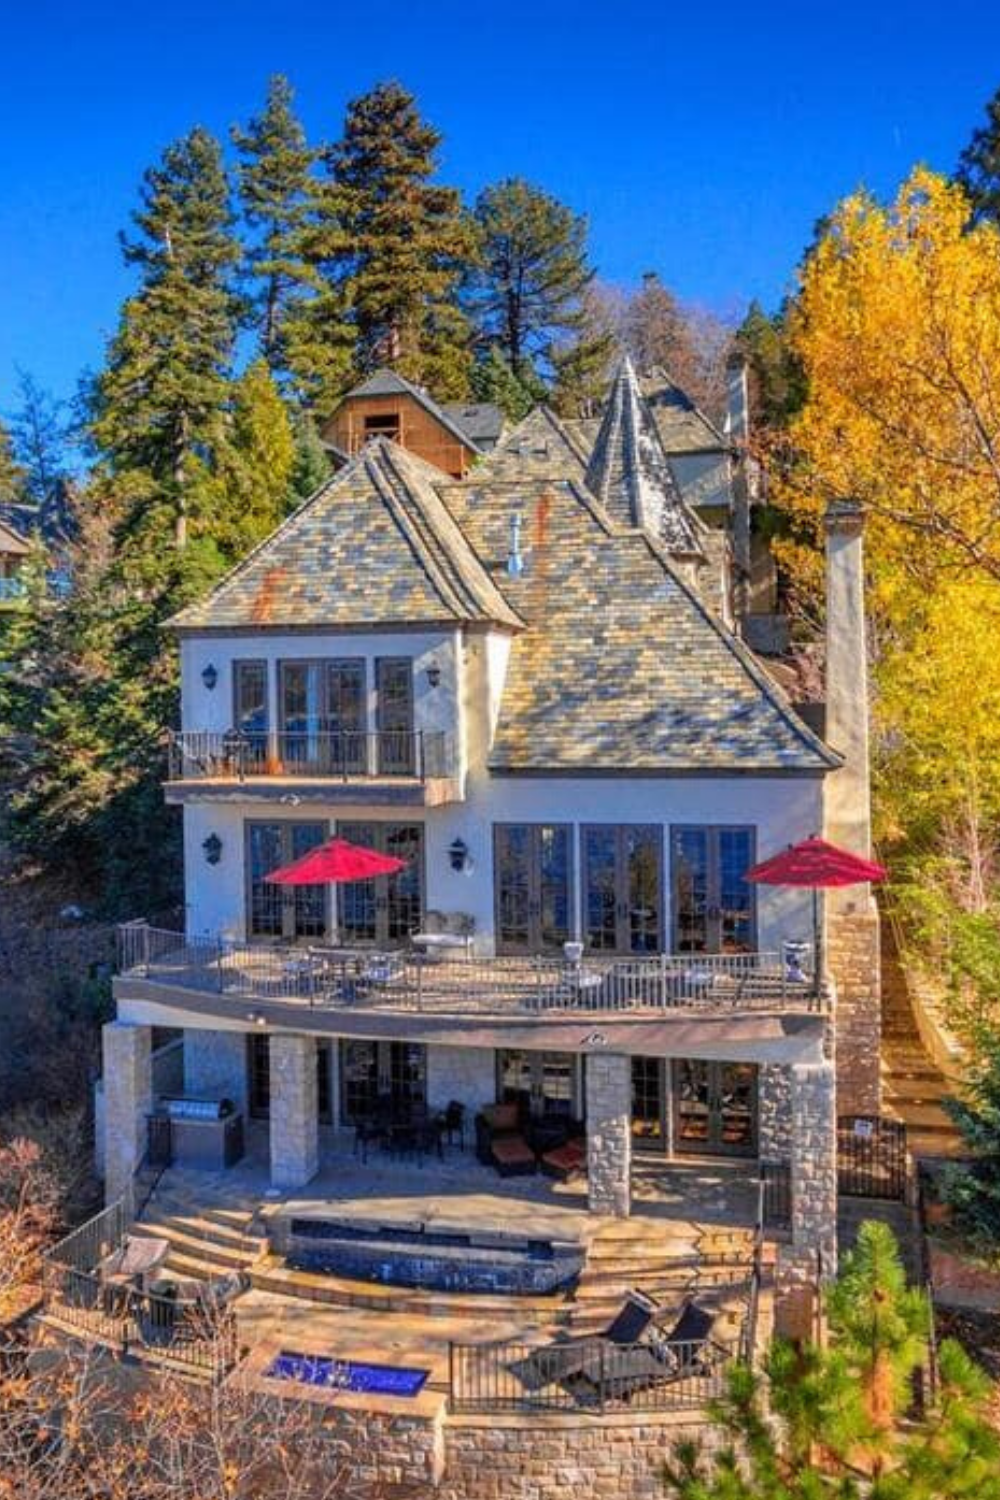 Sammy Hagar S House In Lake Arrowhead Ca Listed For 3 9 Million In 2020 House Exterior Luxury Homes Exterior Celebrity Houses